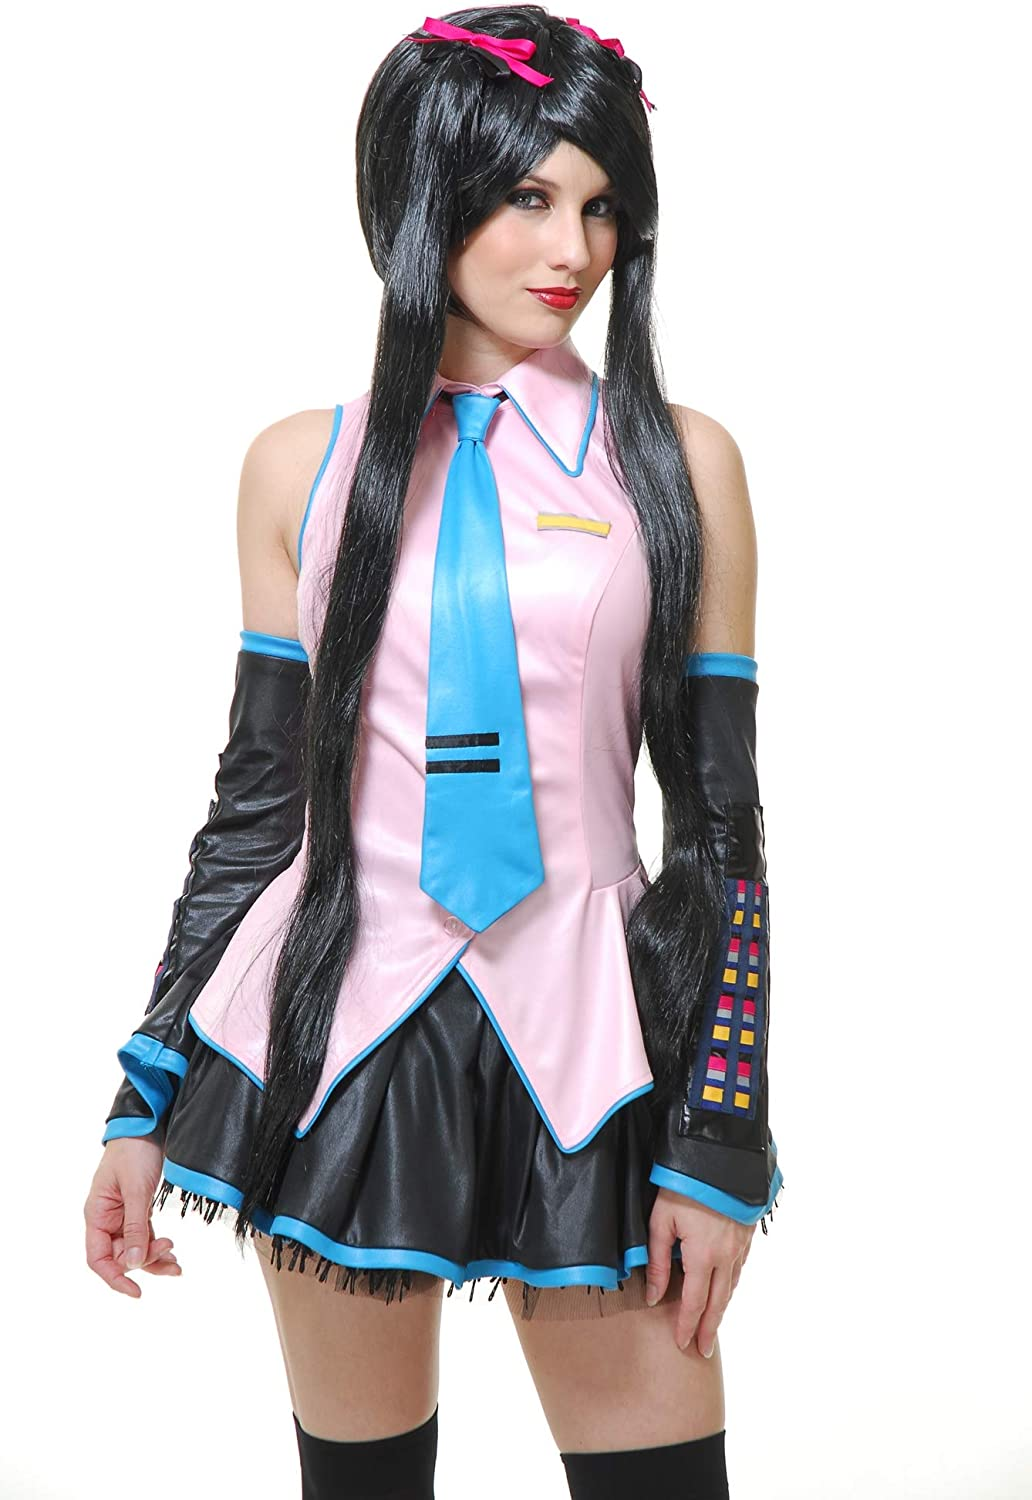 Anime Girl Cosplay VOCALOID Hatsune Miku Cosplay Costume with Wig for Halloween